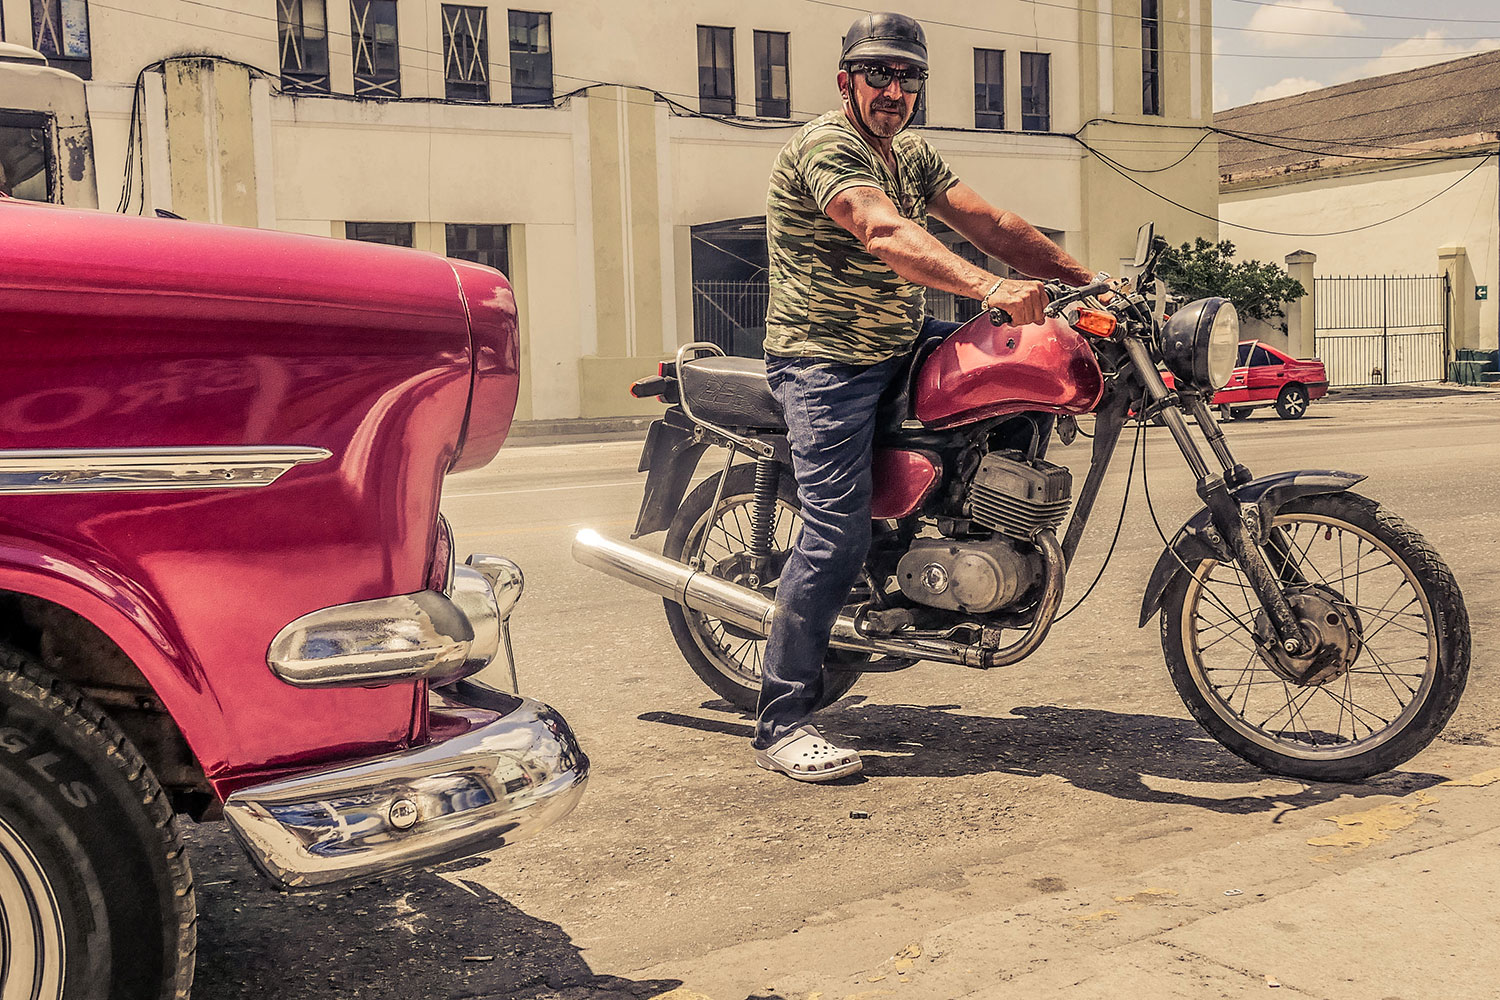 Cuban guy in Resurgence Gears, Pekev® Lite, Dark Blue motorcycle jeans Australia - Picture by Dean Saffron 2